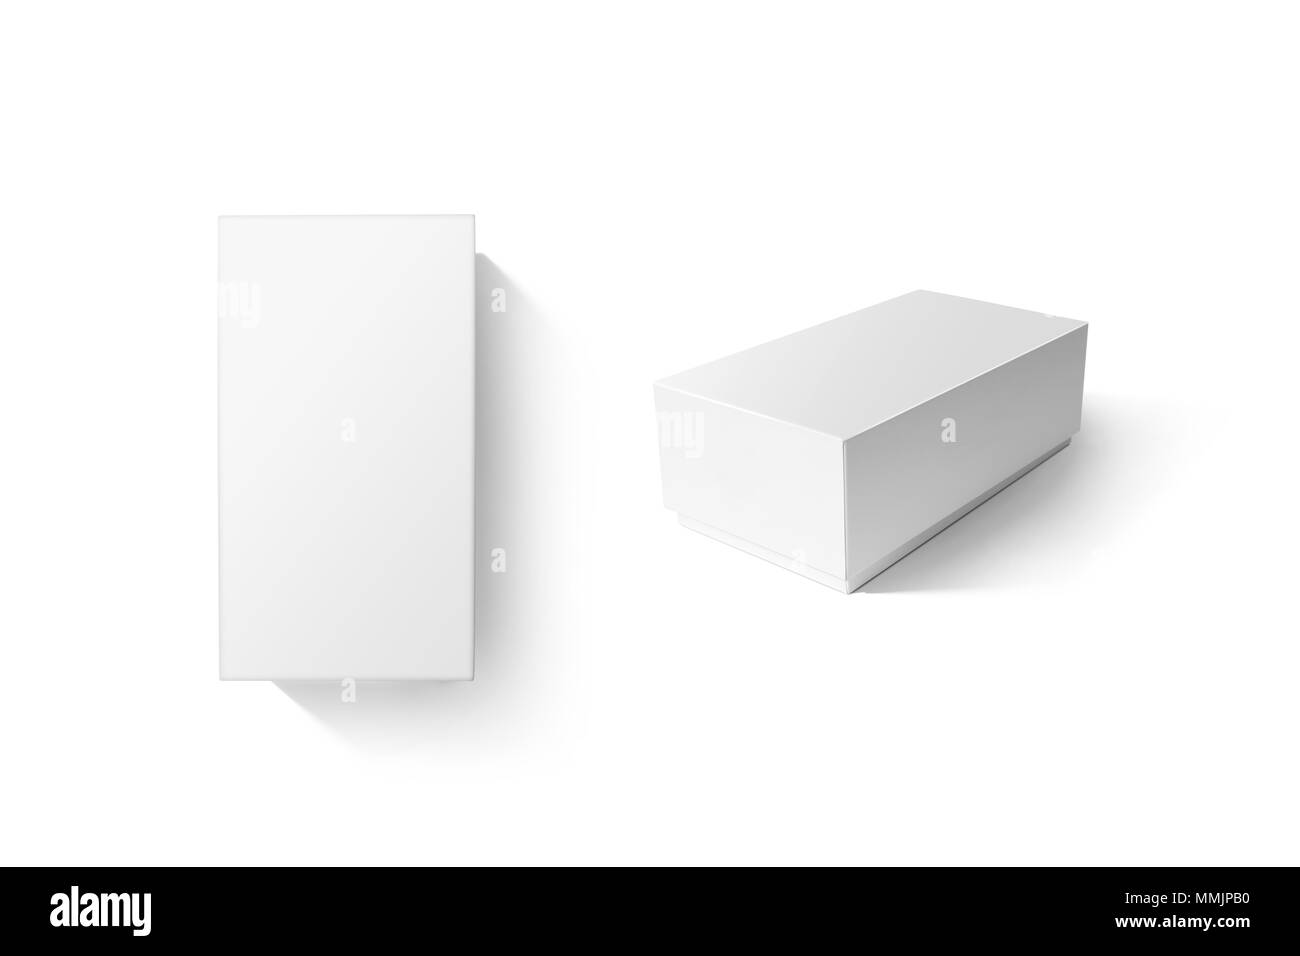 white carton product box set mockup top side view clipping path